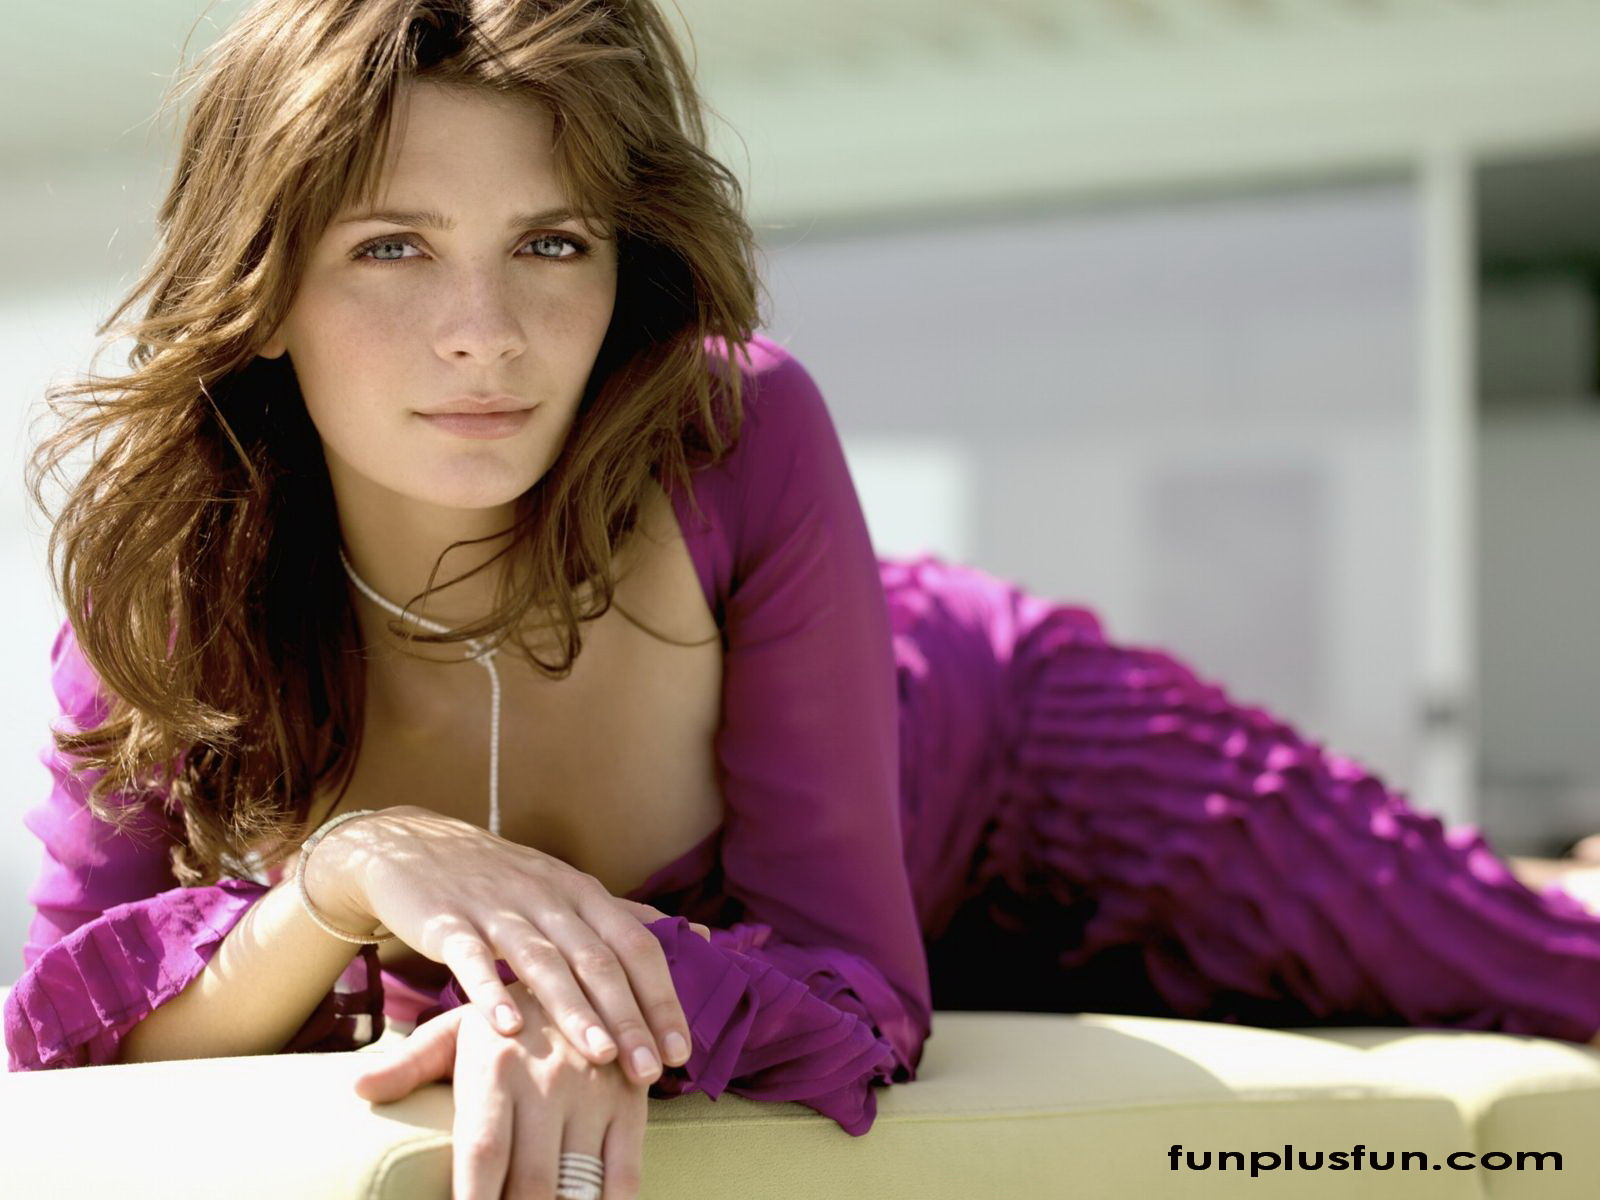 http://2.bp.blogspot.com/-vFhUXYNWPCg/T64dYNOFVeI/AAAAAAAAKzQ/w1PZftdzyFI/s1600/hot-wallpapers-of-hollywood-actress6.jpg